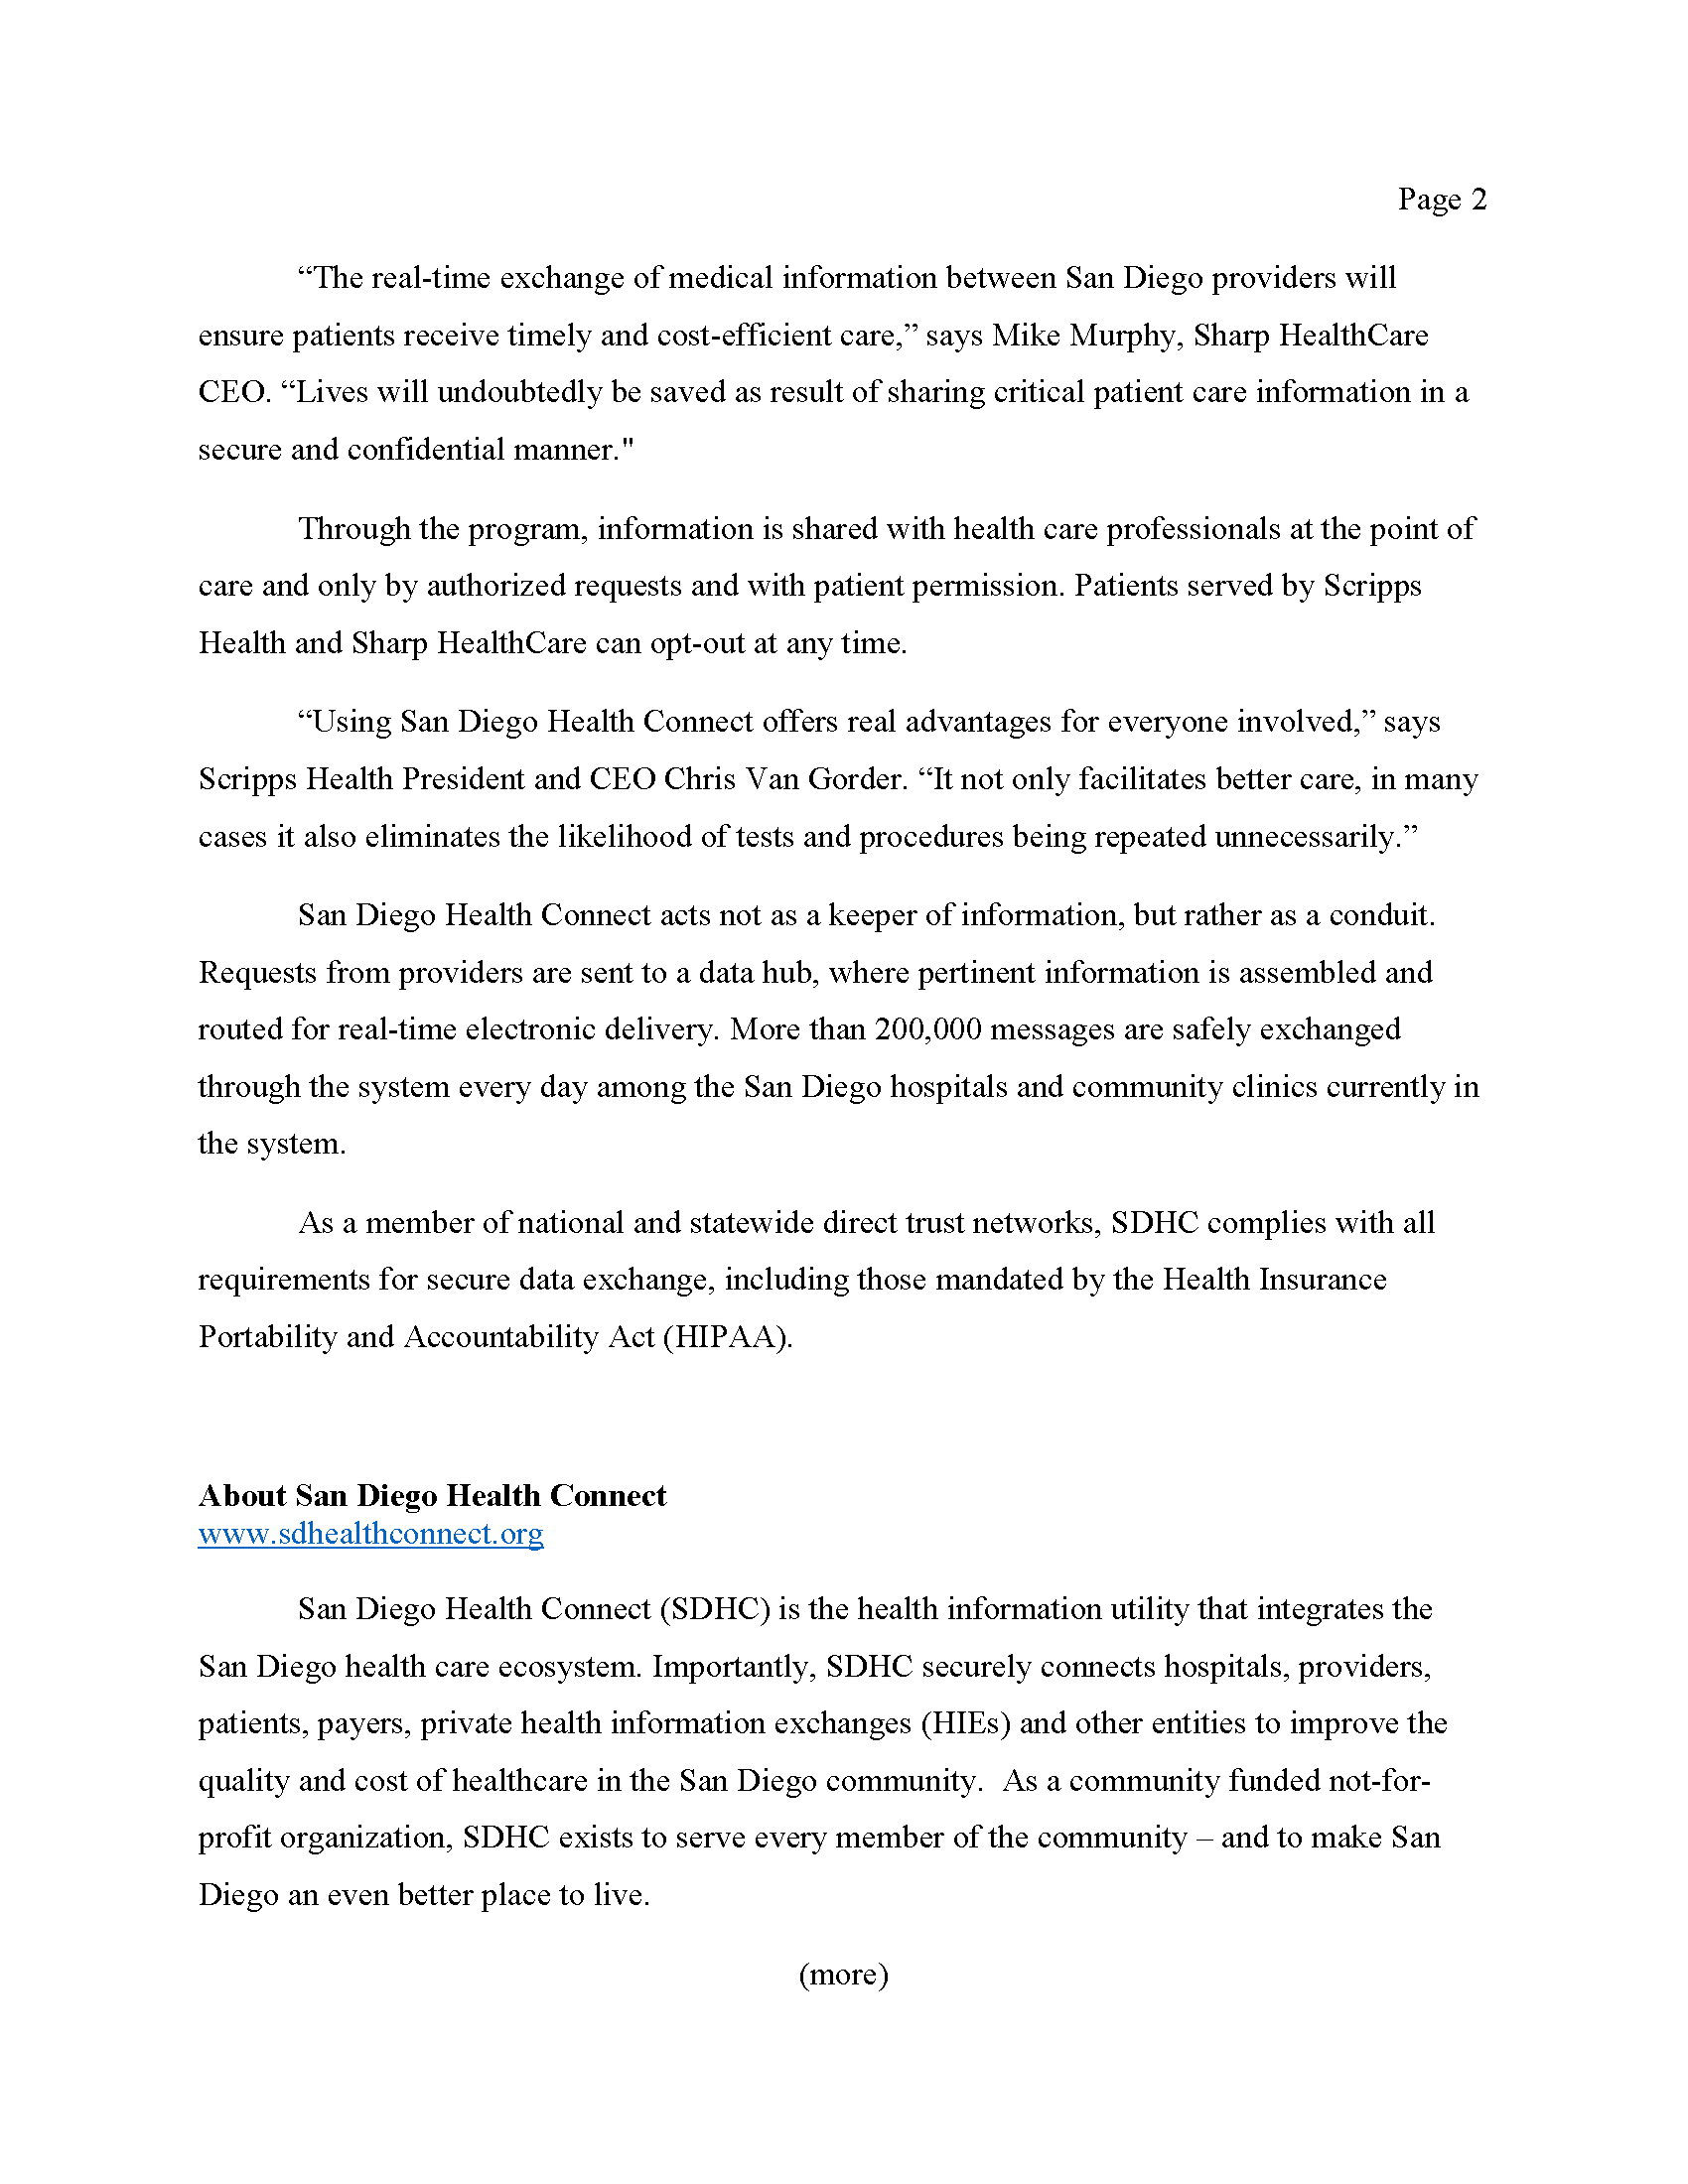 San Diego Health Connect PRESS RELEASE FINAL 51215 Page 2